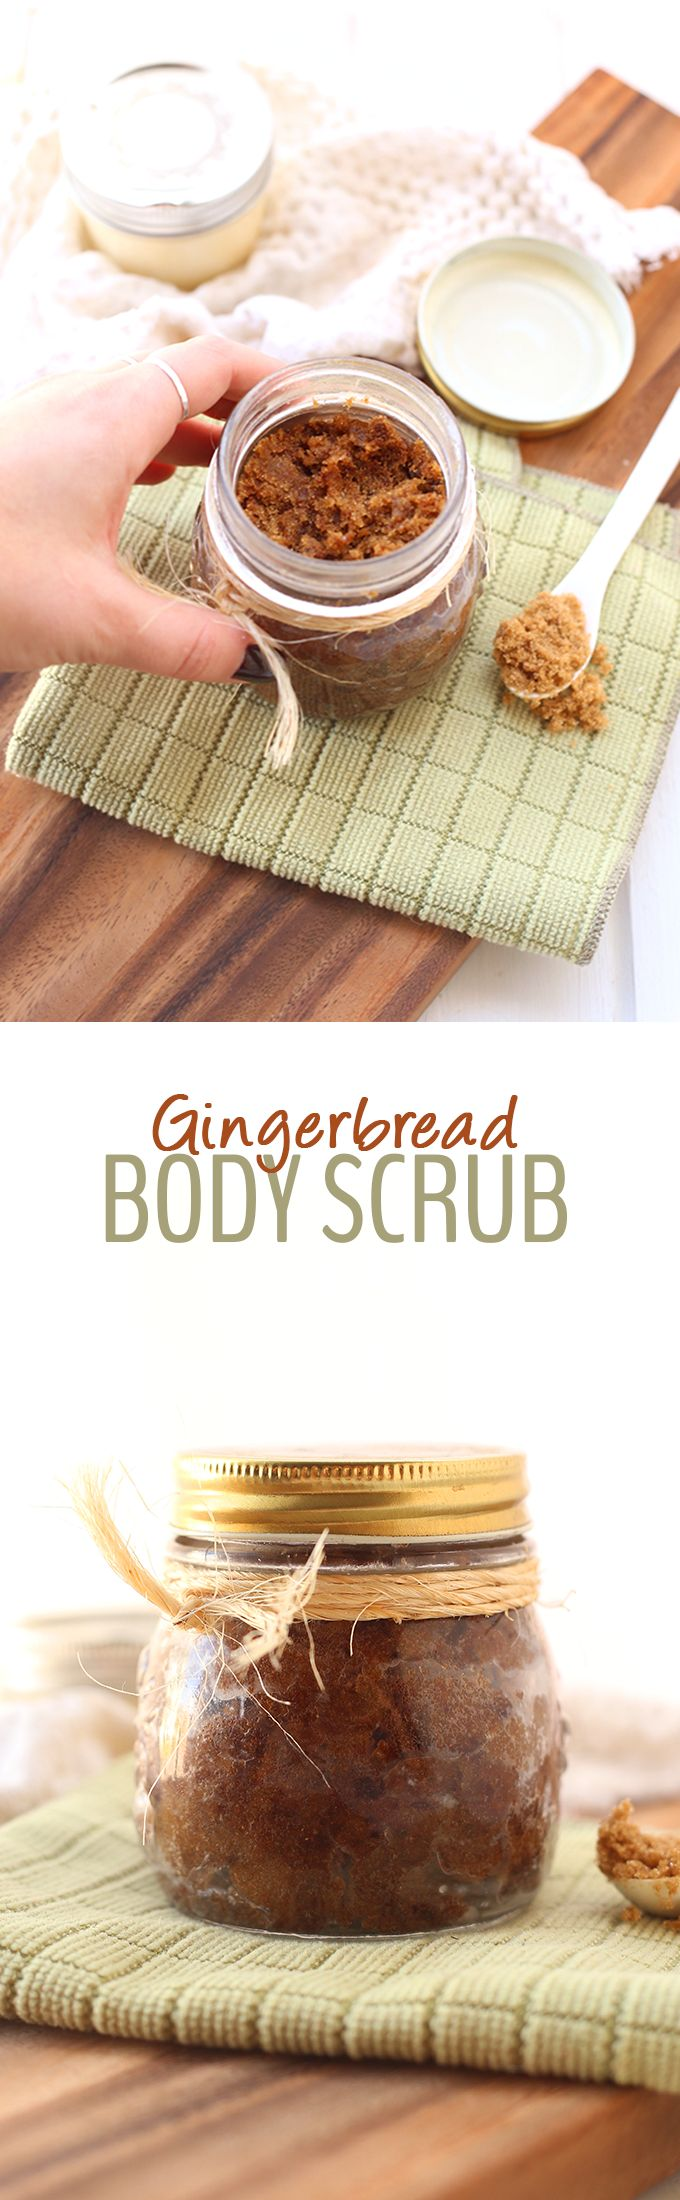 5 kitchen ingredients is all you need to make this all-natural DIY Gingerbread Body Scrub. It makes the ultimate holiday gift that will keep your friends and family's skin soft and smooth all winter long.